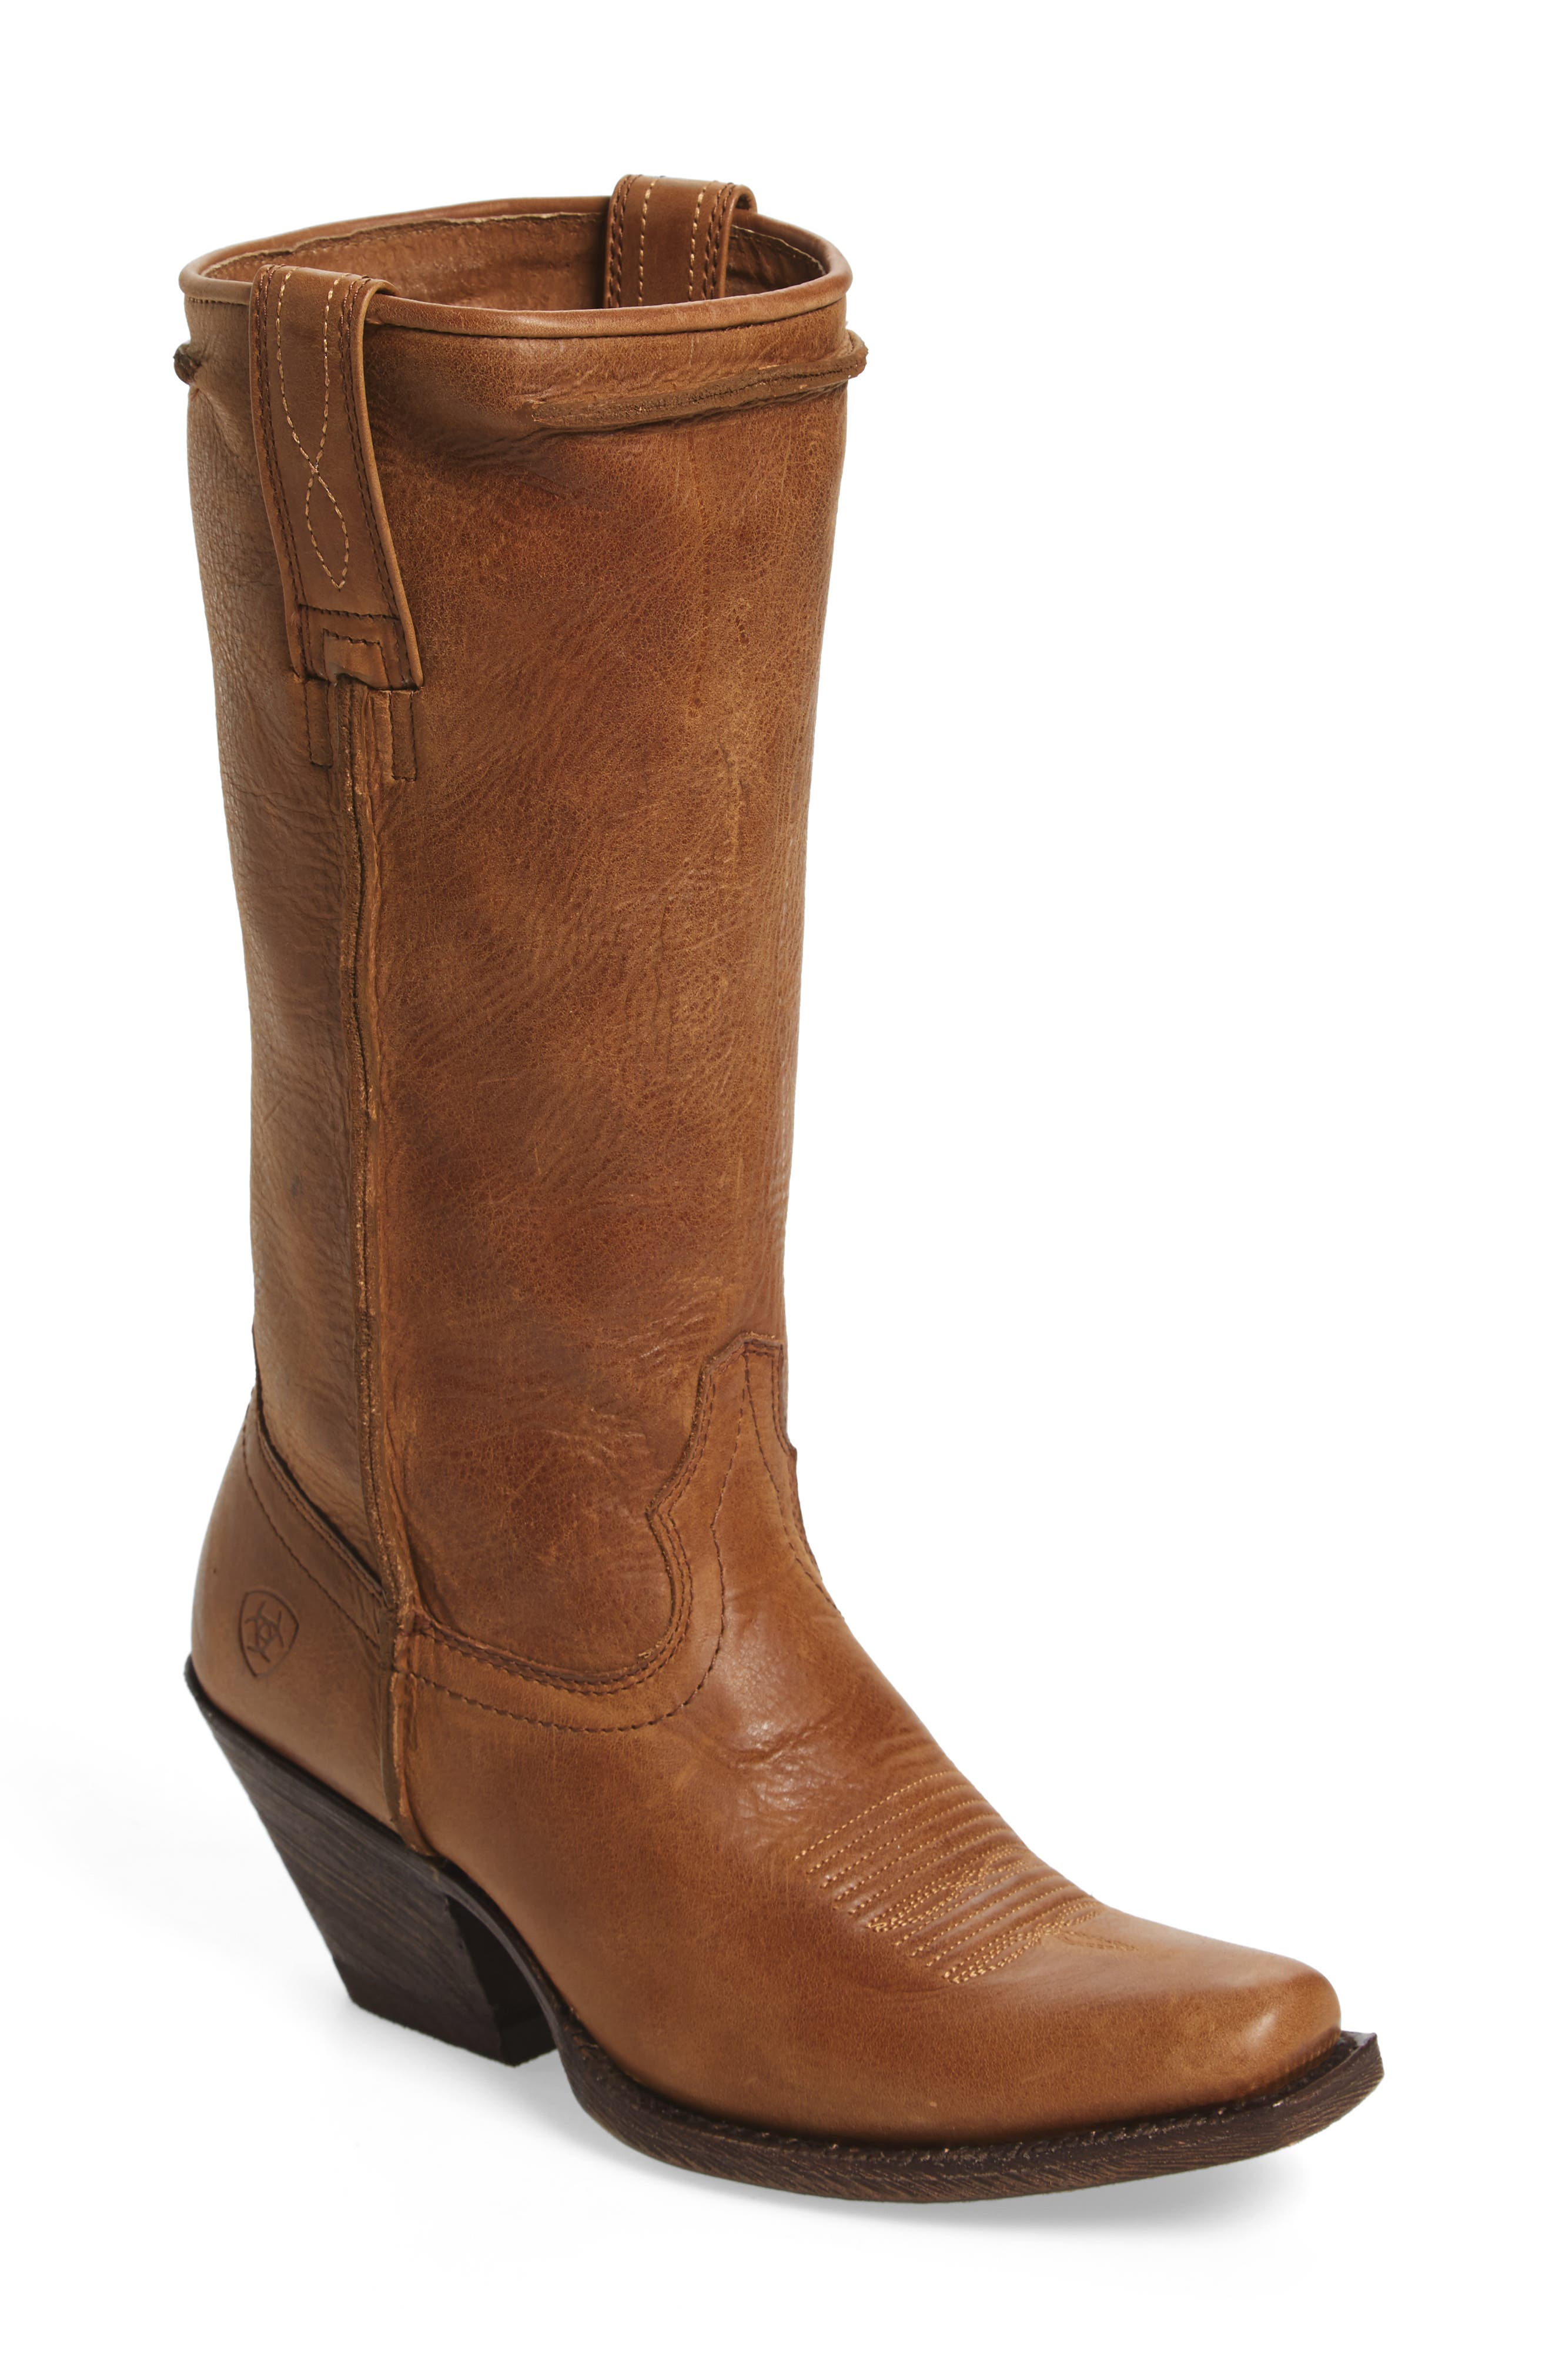 Alternate Image 1 Selected - Ariat Rowan Stovepipe Western Boot (Women)